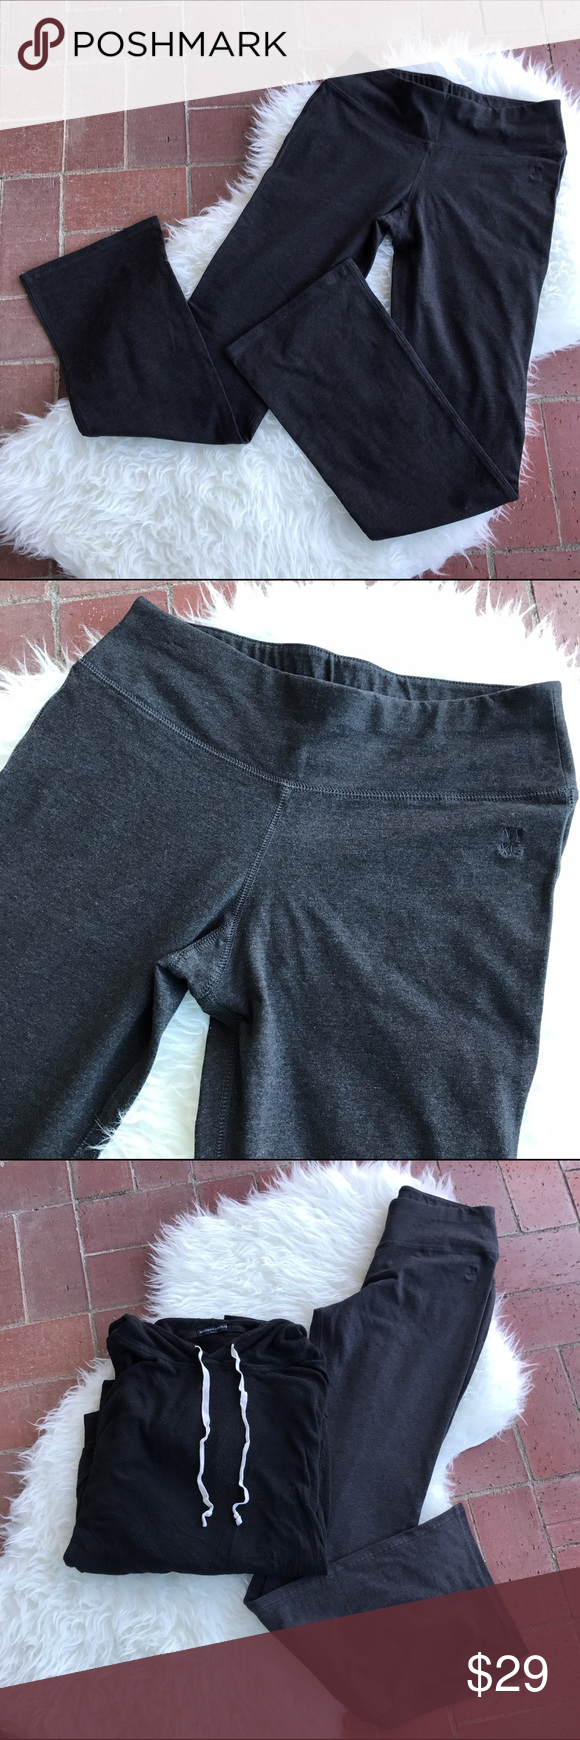 NY&C Leggings! NY&C Leggings! Like New! •Excellent condition •Heather gray shade •Bootcut yoga pants style NY&C Pants Leggings